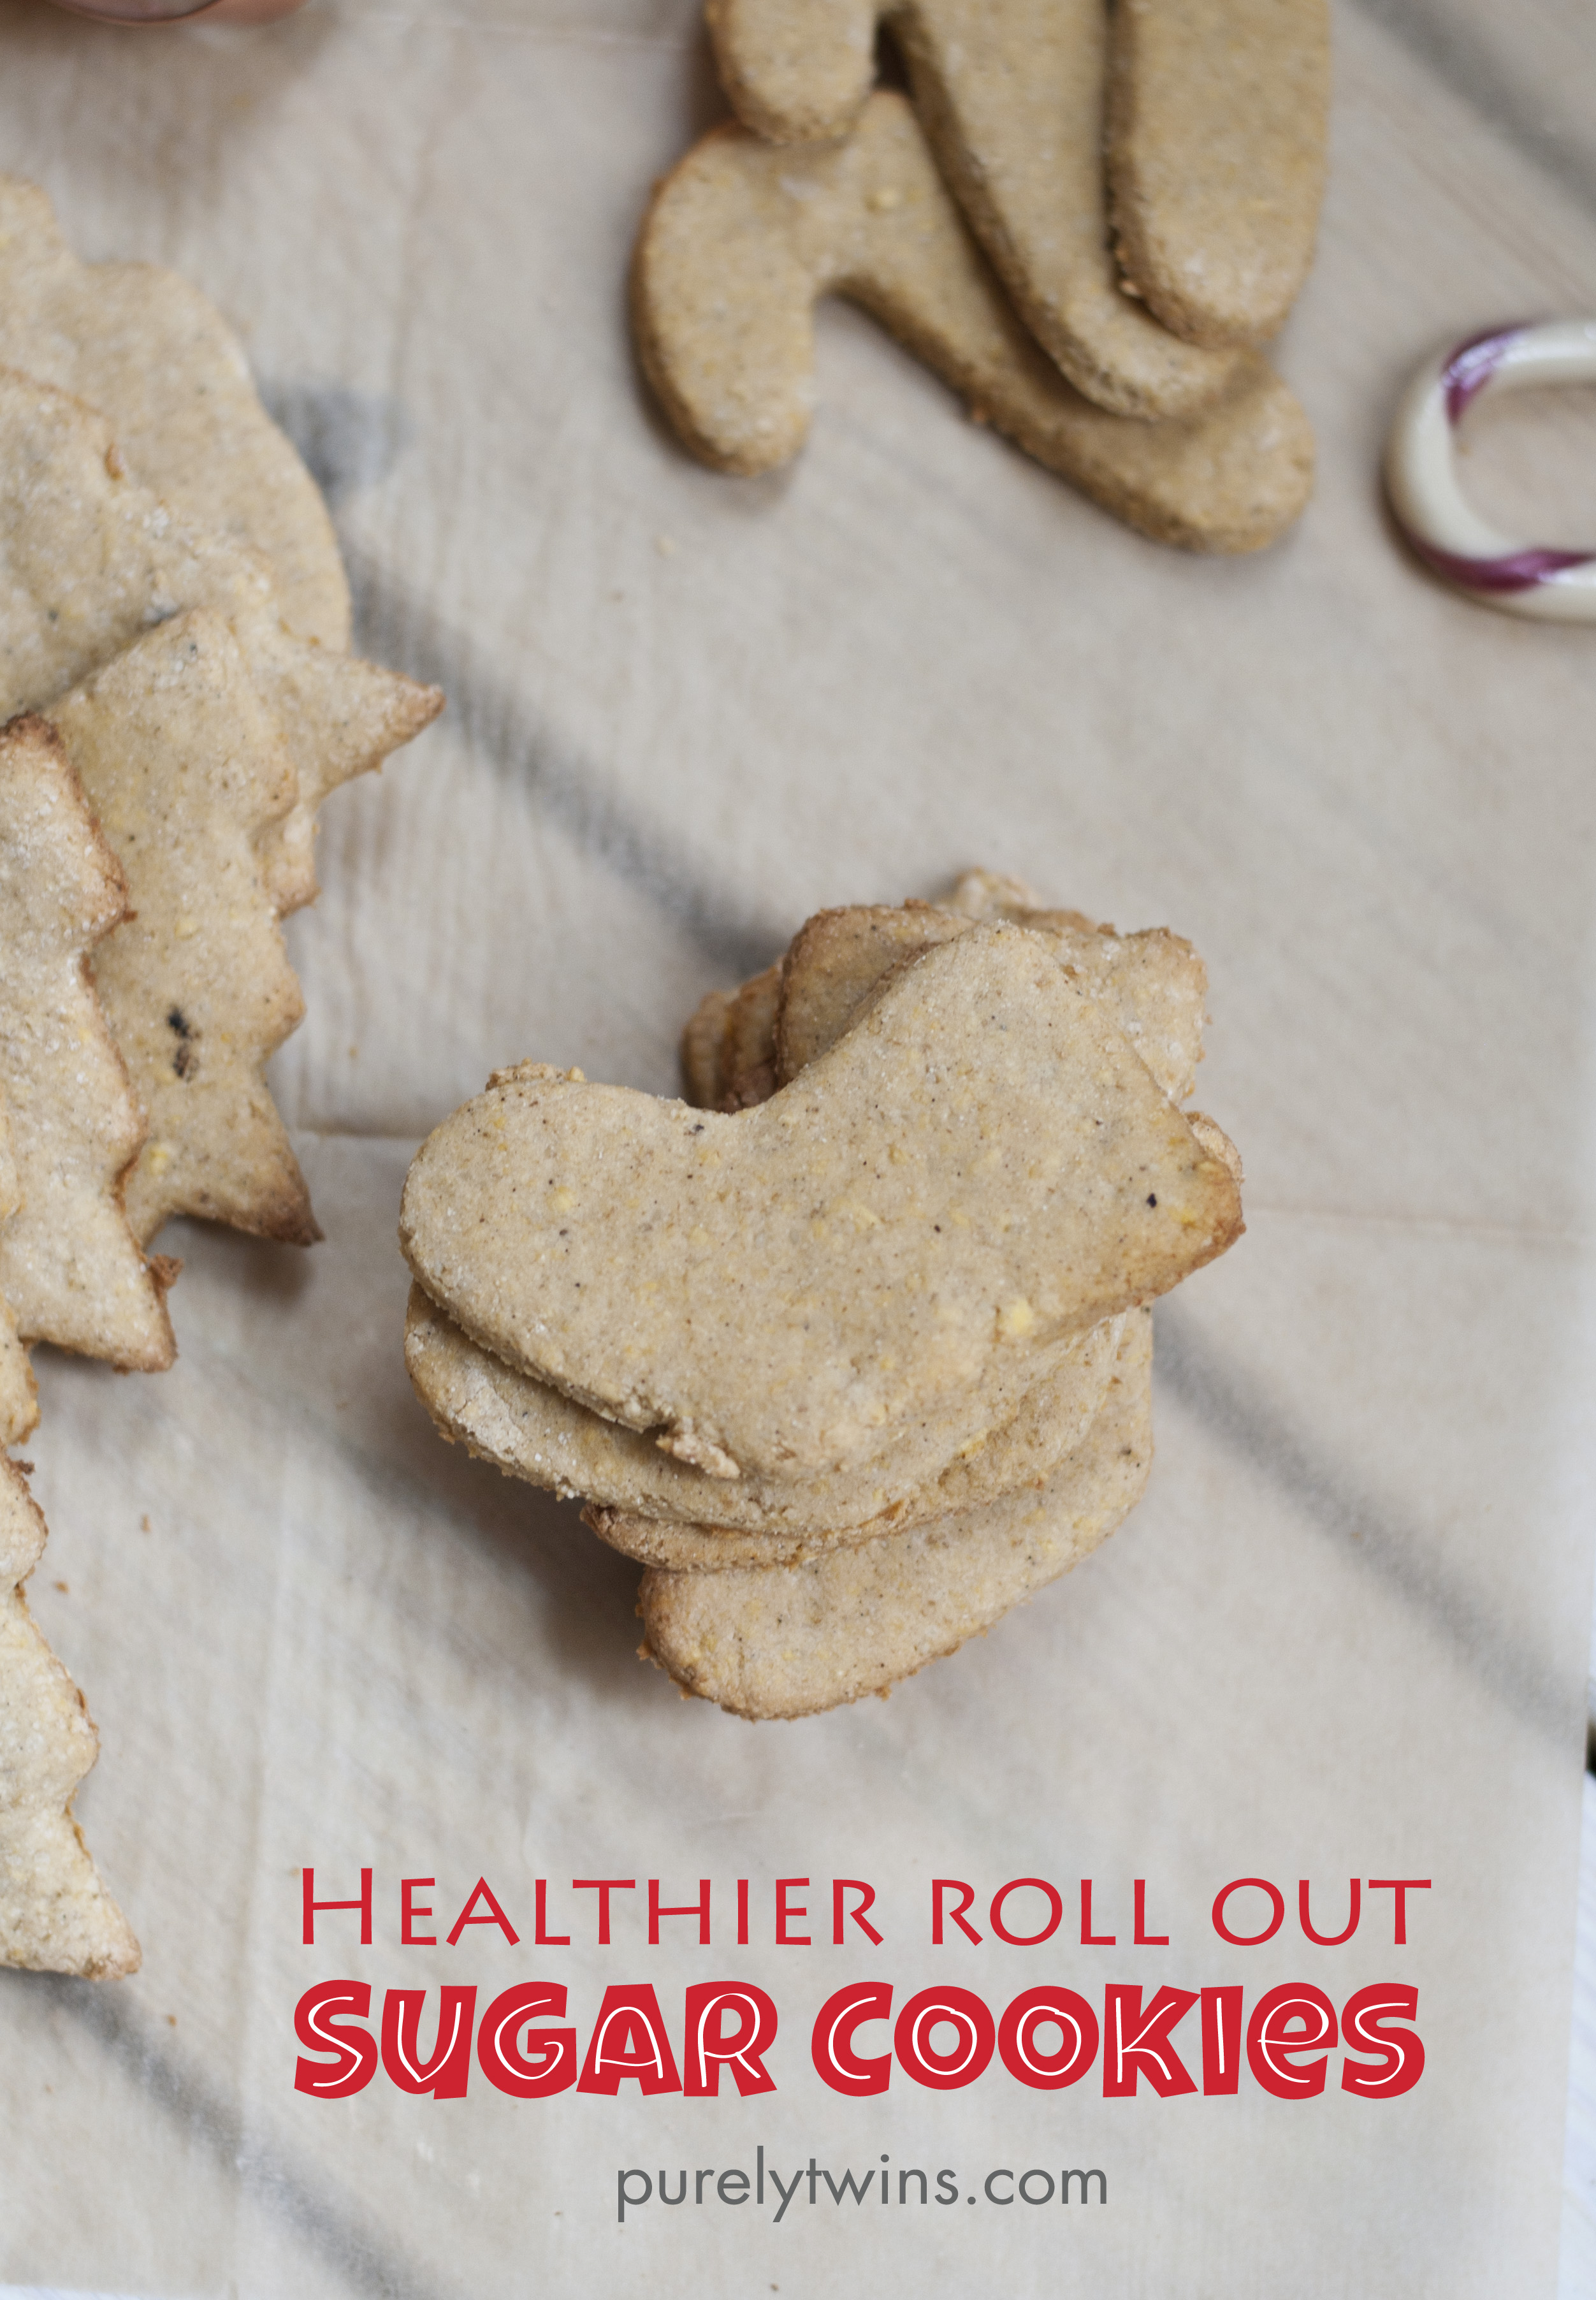 healthier roll out sugar cookies